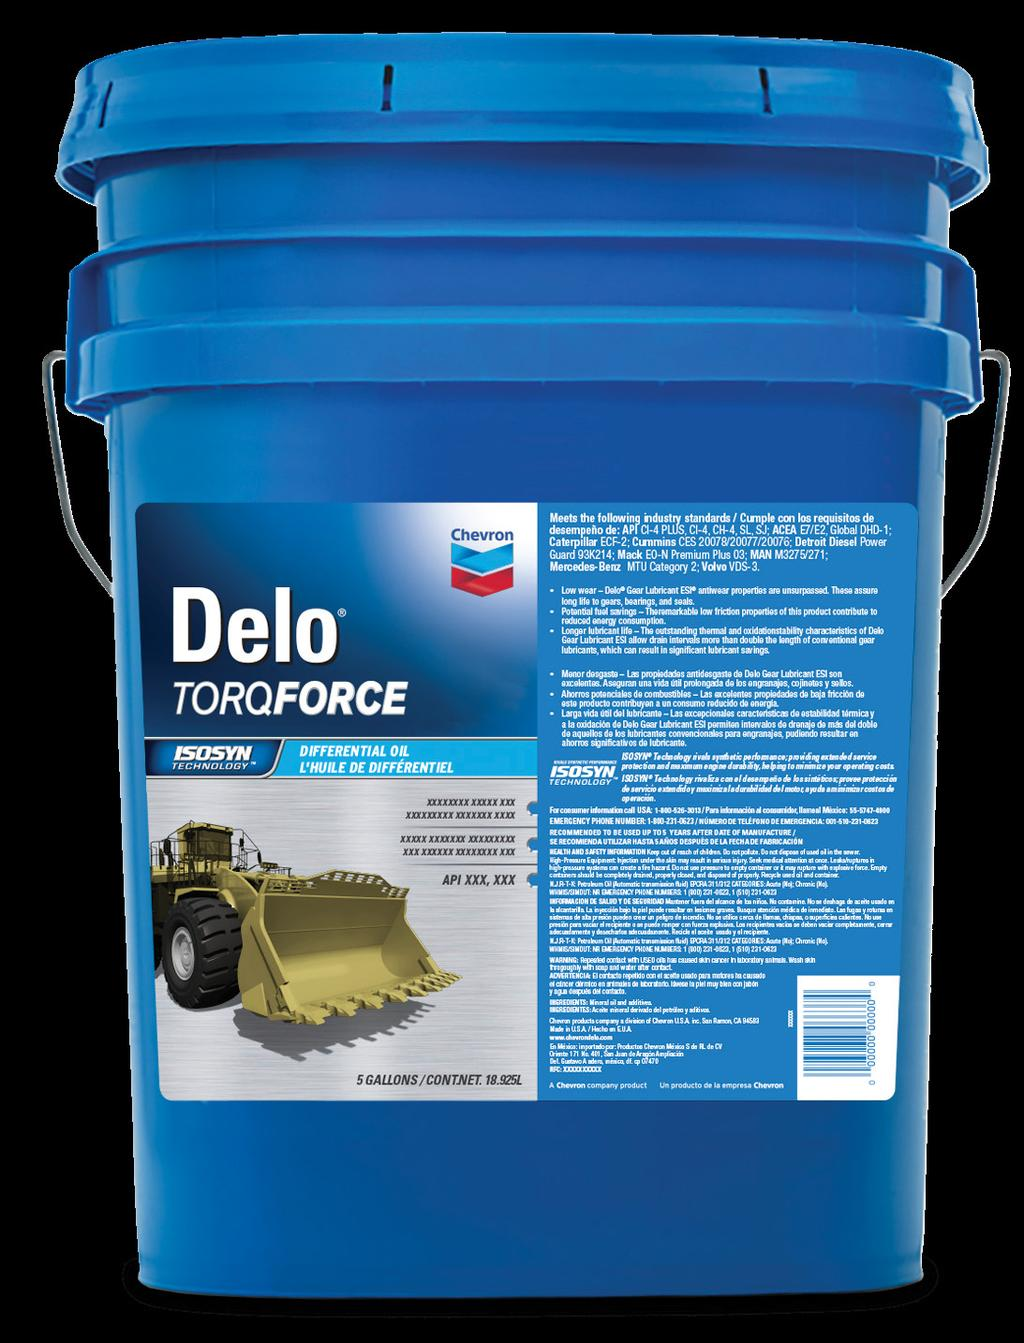 ROBUST PERFORMANCE Covering a Wide Range of OEM Requirements Delo TorqForce products are formulated to protect critical components in off-road equipment operating under high loads and severe service